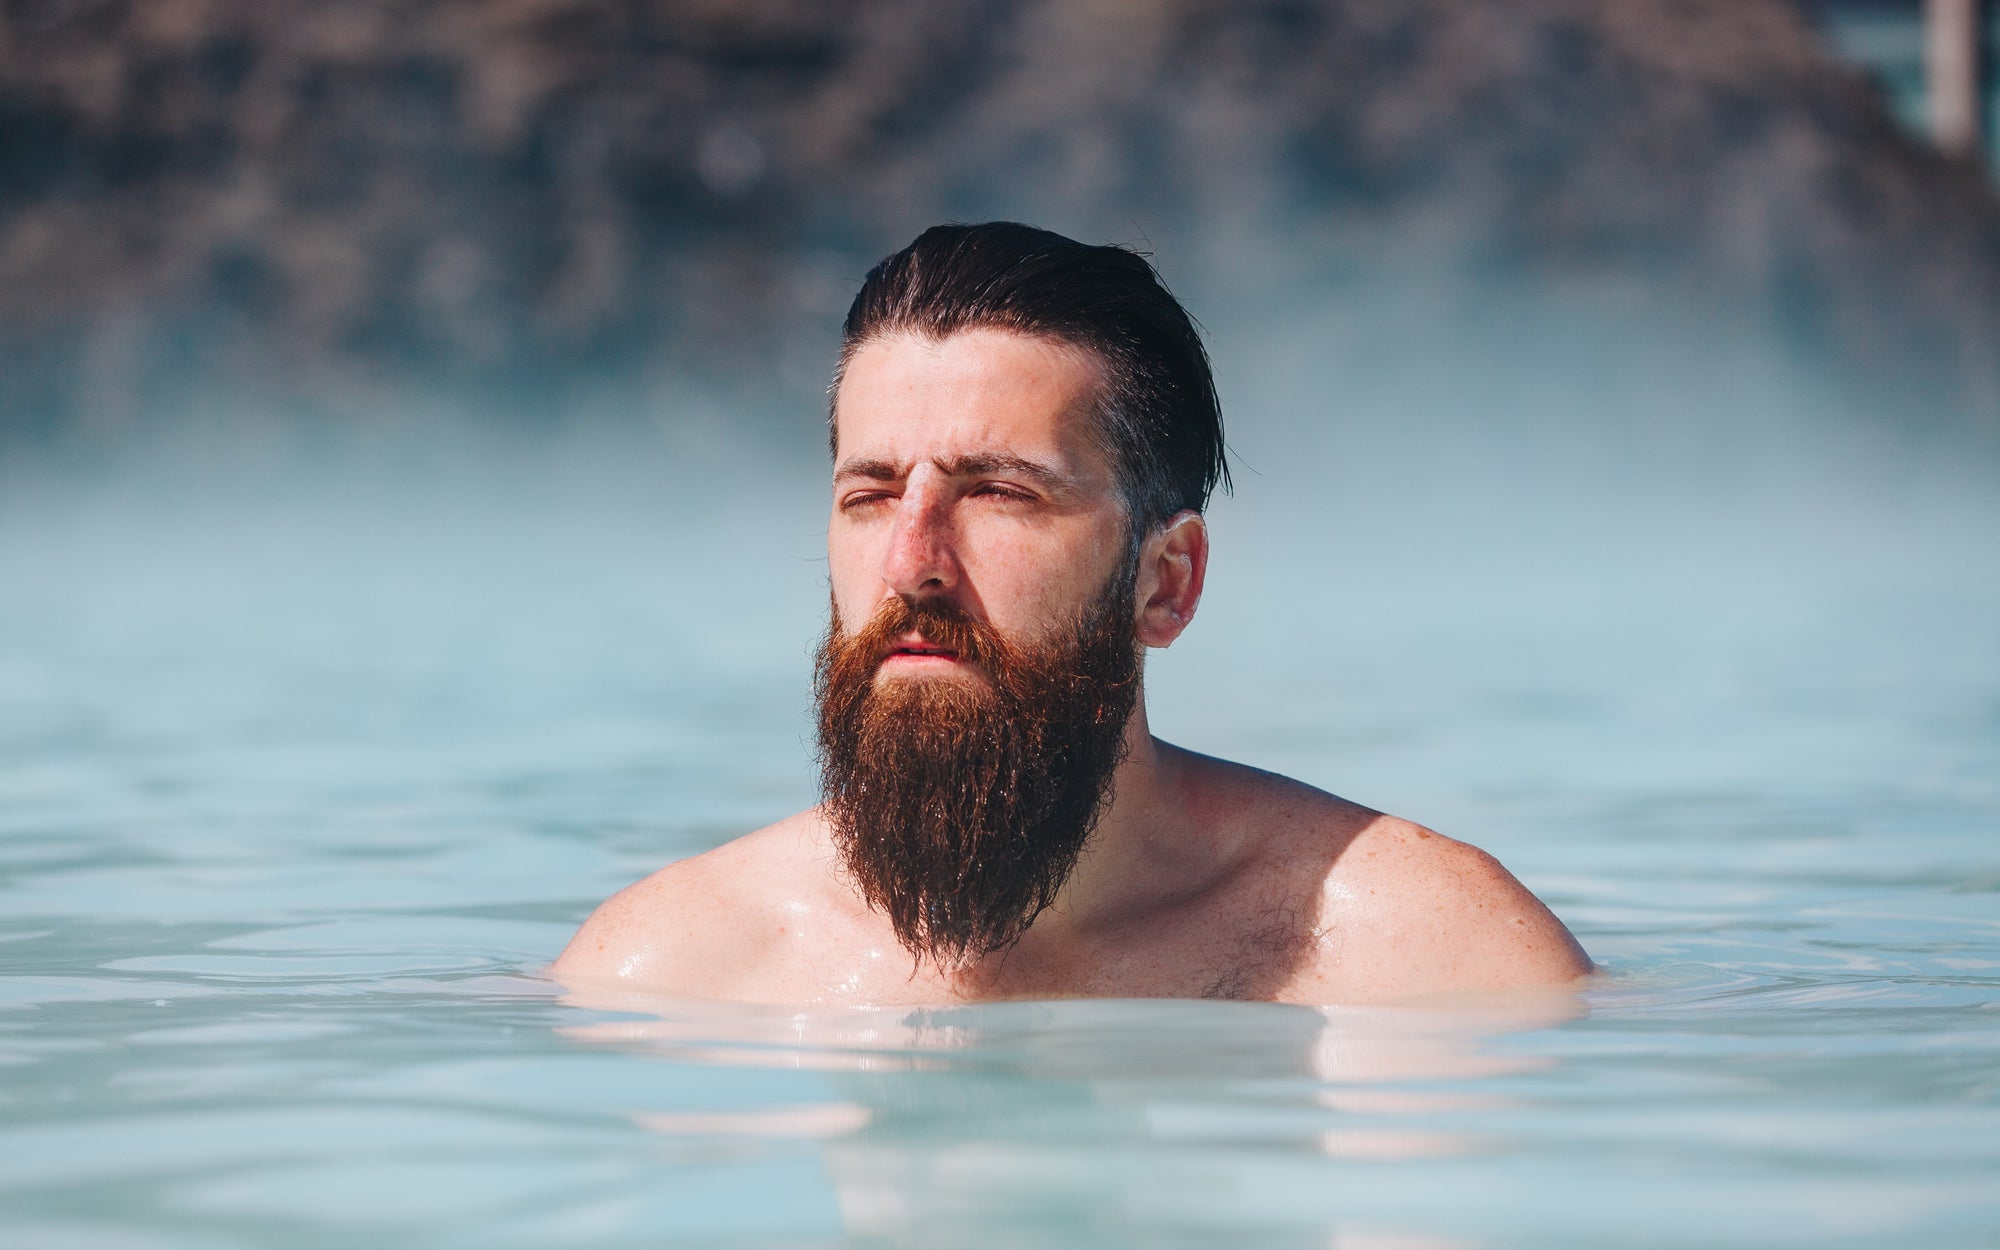 Top 4 Mistakes to Avoid While Growing Your Beard